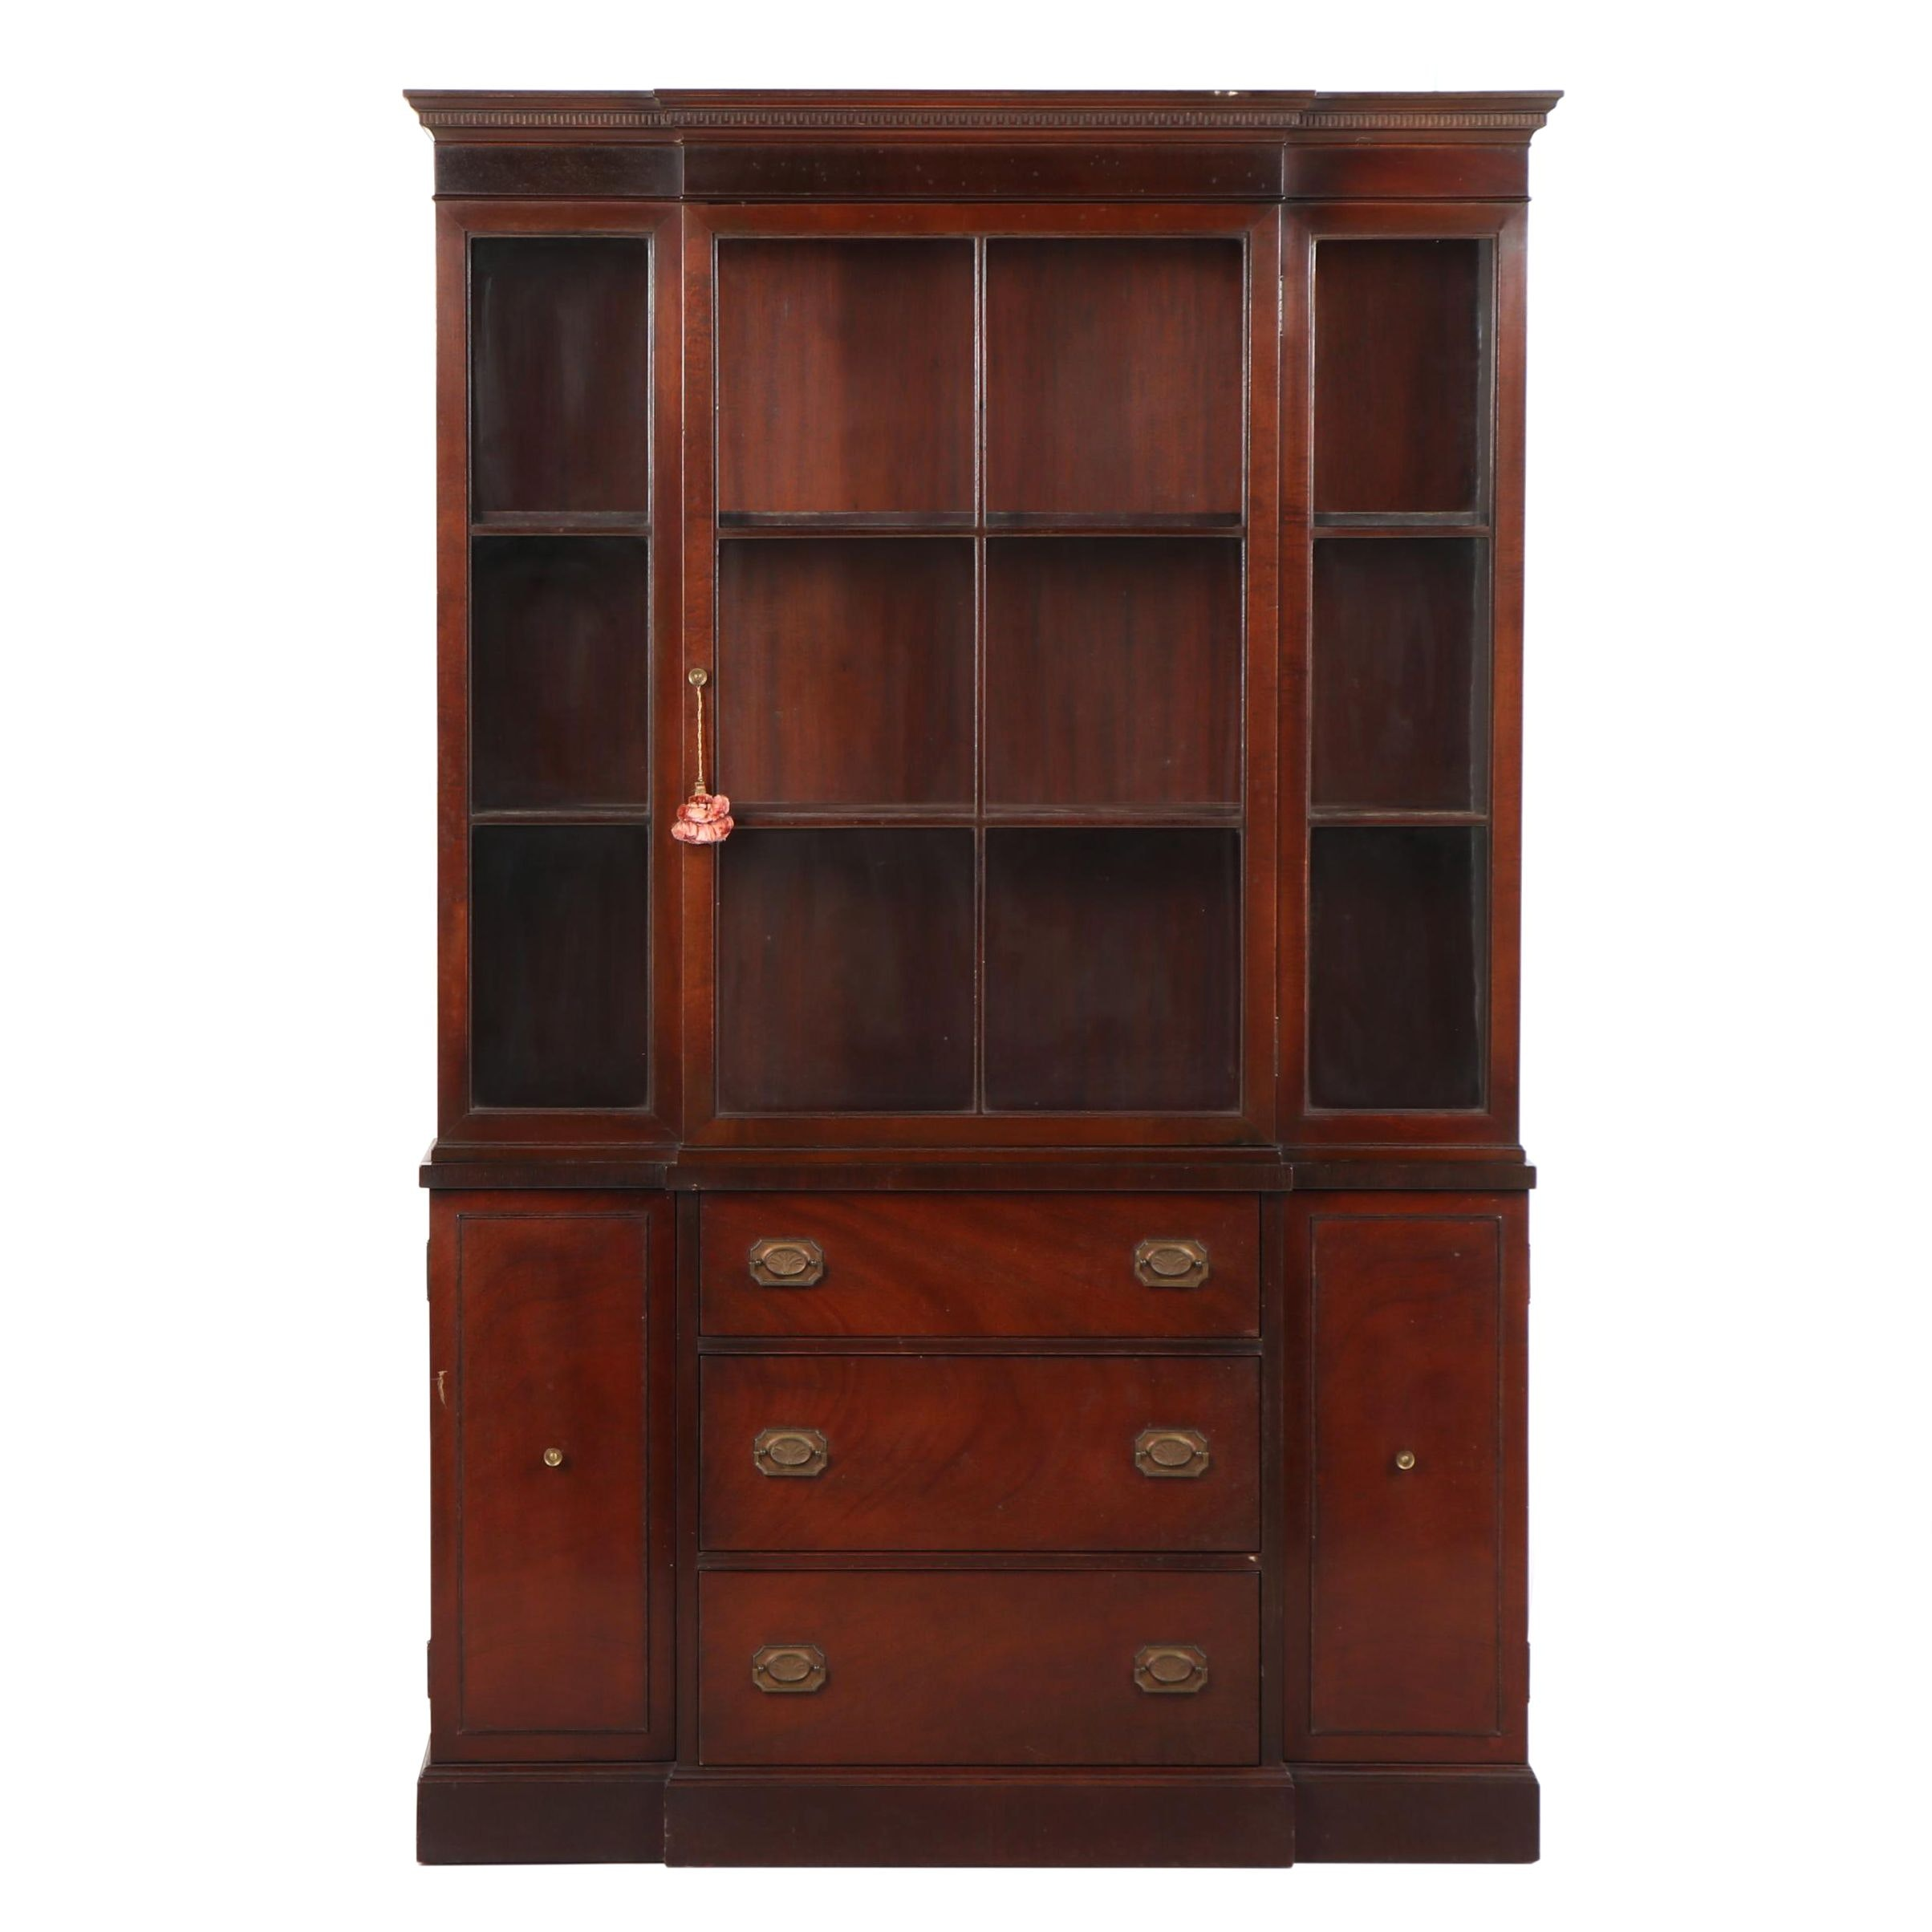 "Federal Style Mahogany ""Pendleton"" China Cabinet by Irwin, Mid-20th Century"